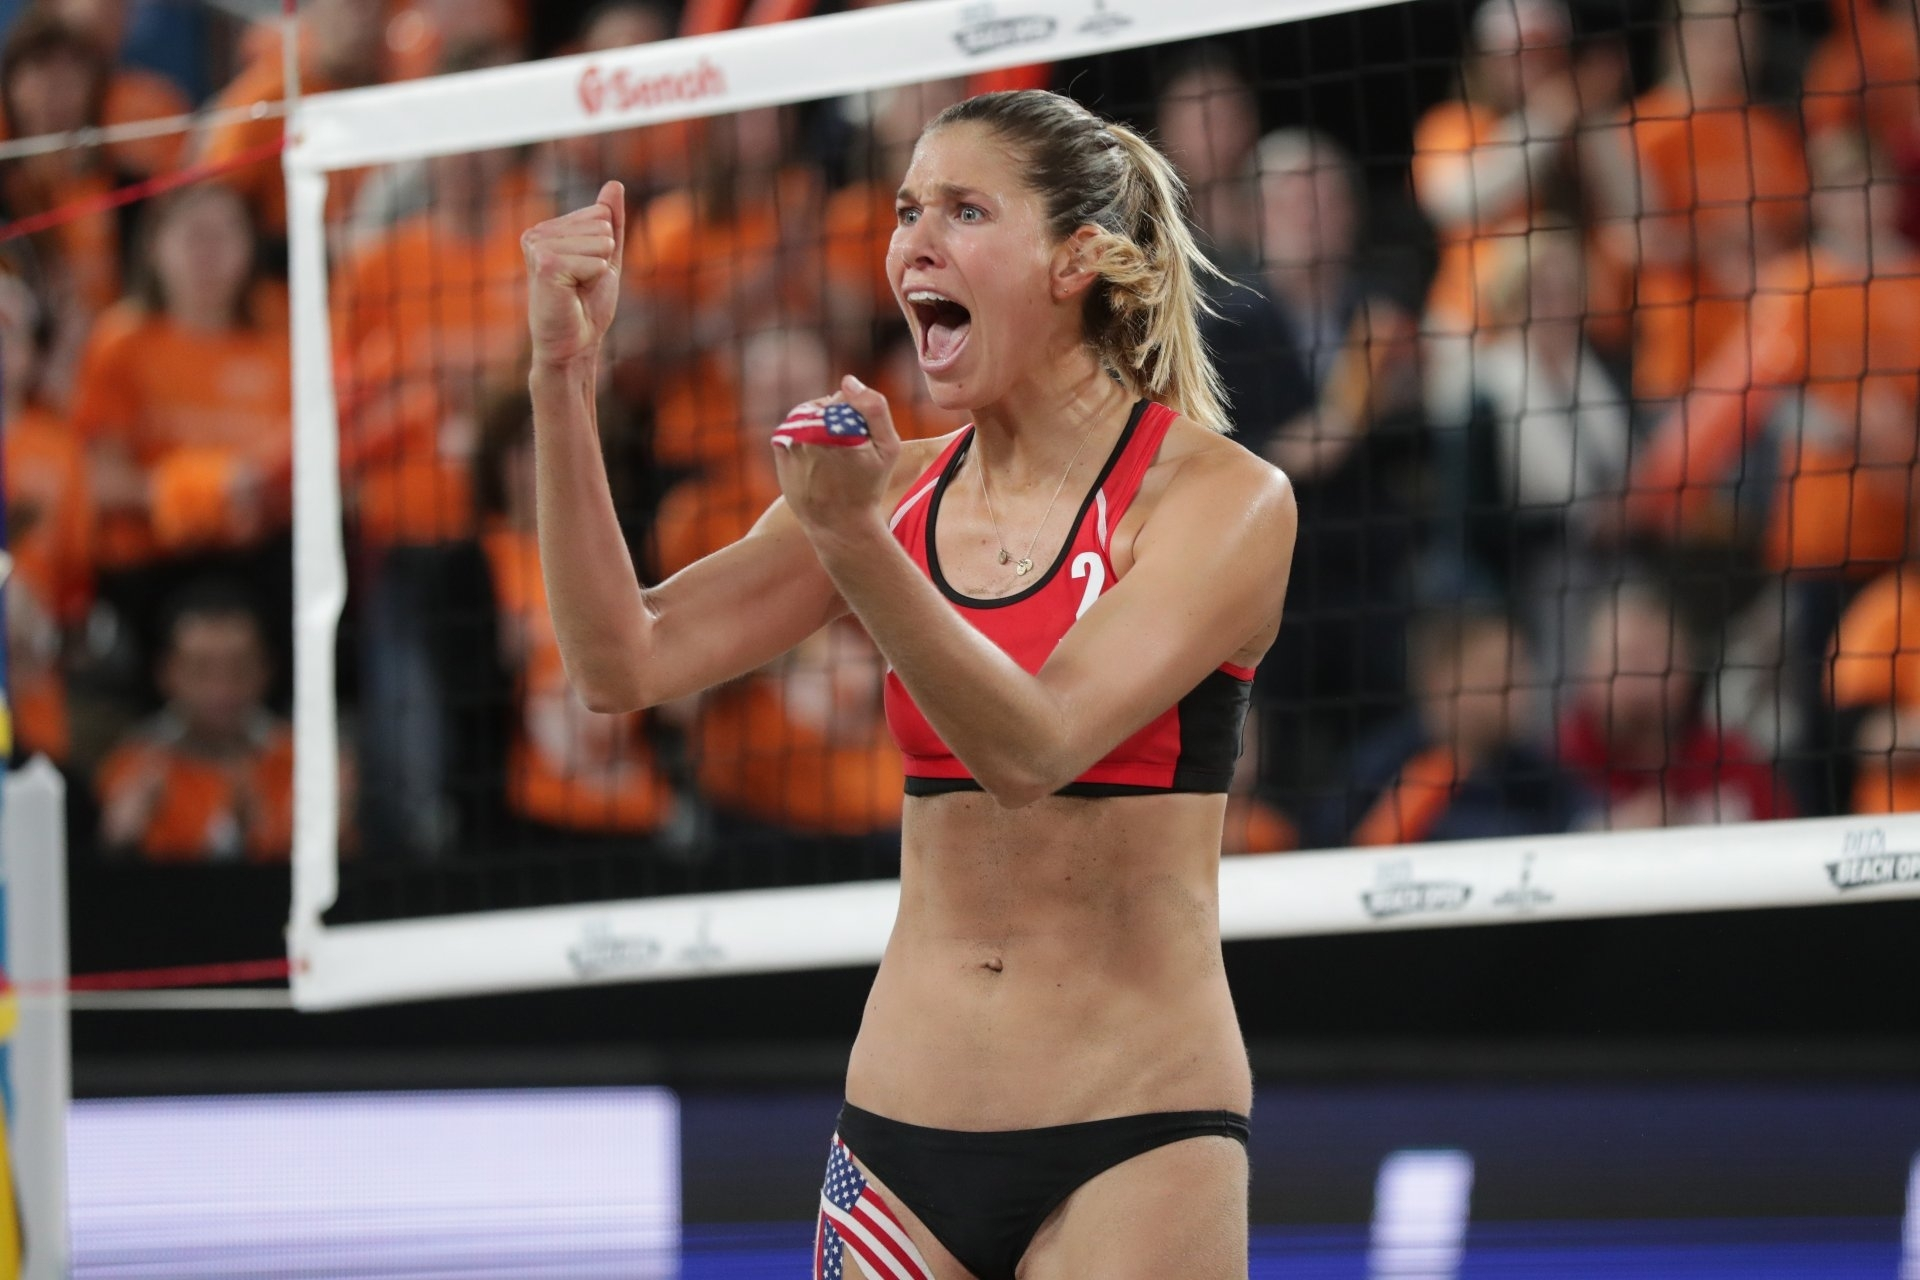 Alix celebrates during last week's final in The Hague. Photocredit: FIVB.